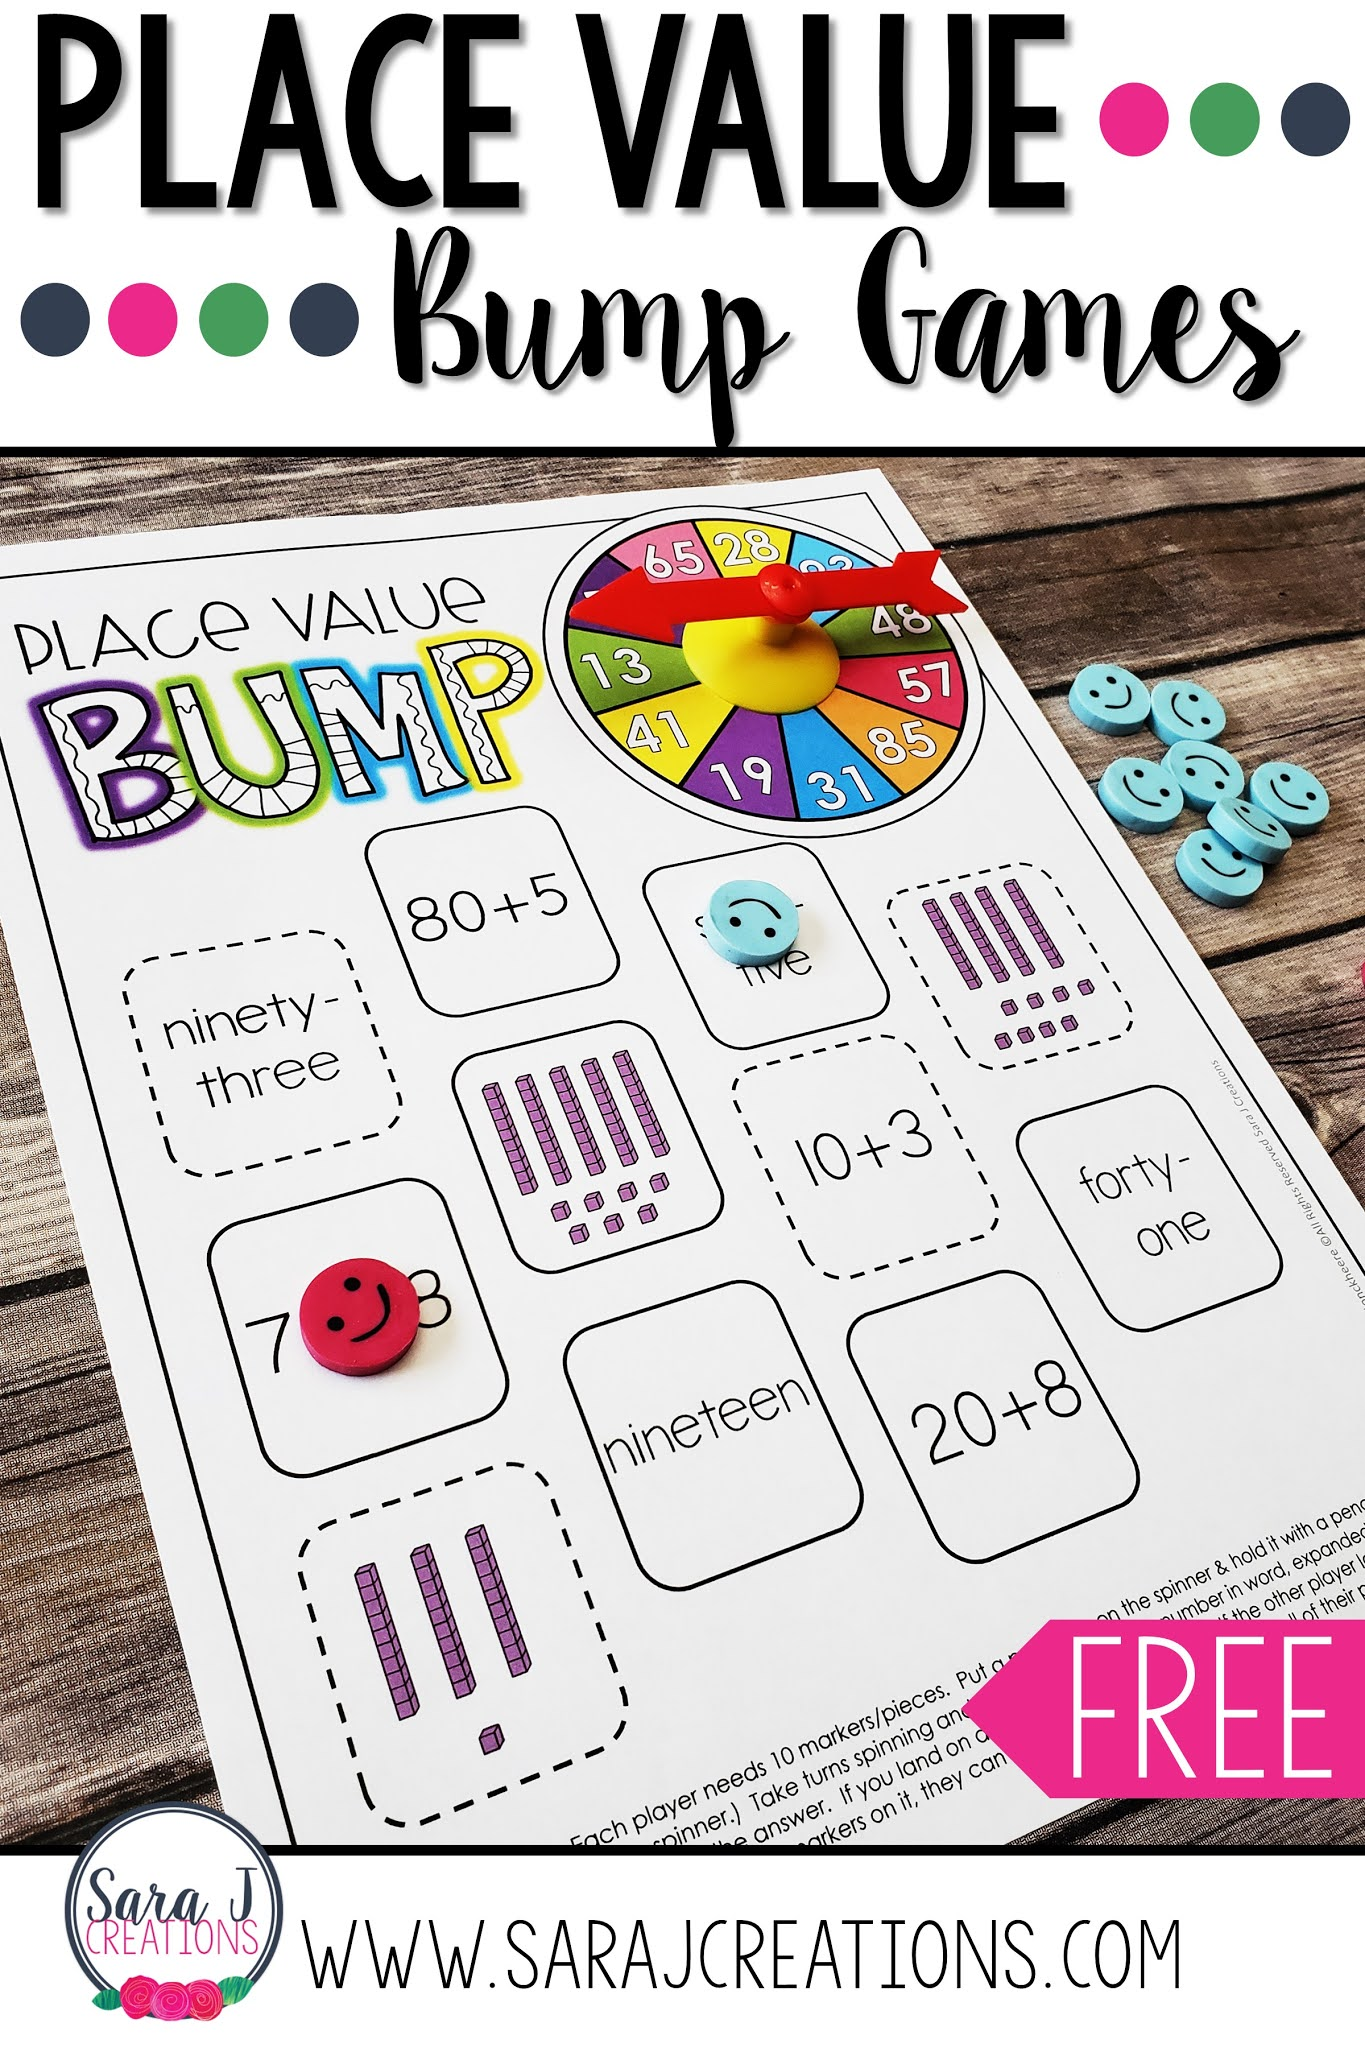 FREE place value bump game to make practicing place value a lot more fun. Perfect for math centers, fast finishers or send home for students to play at home.